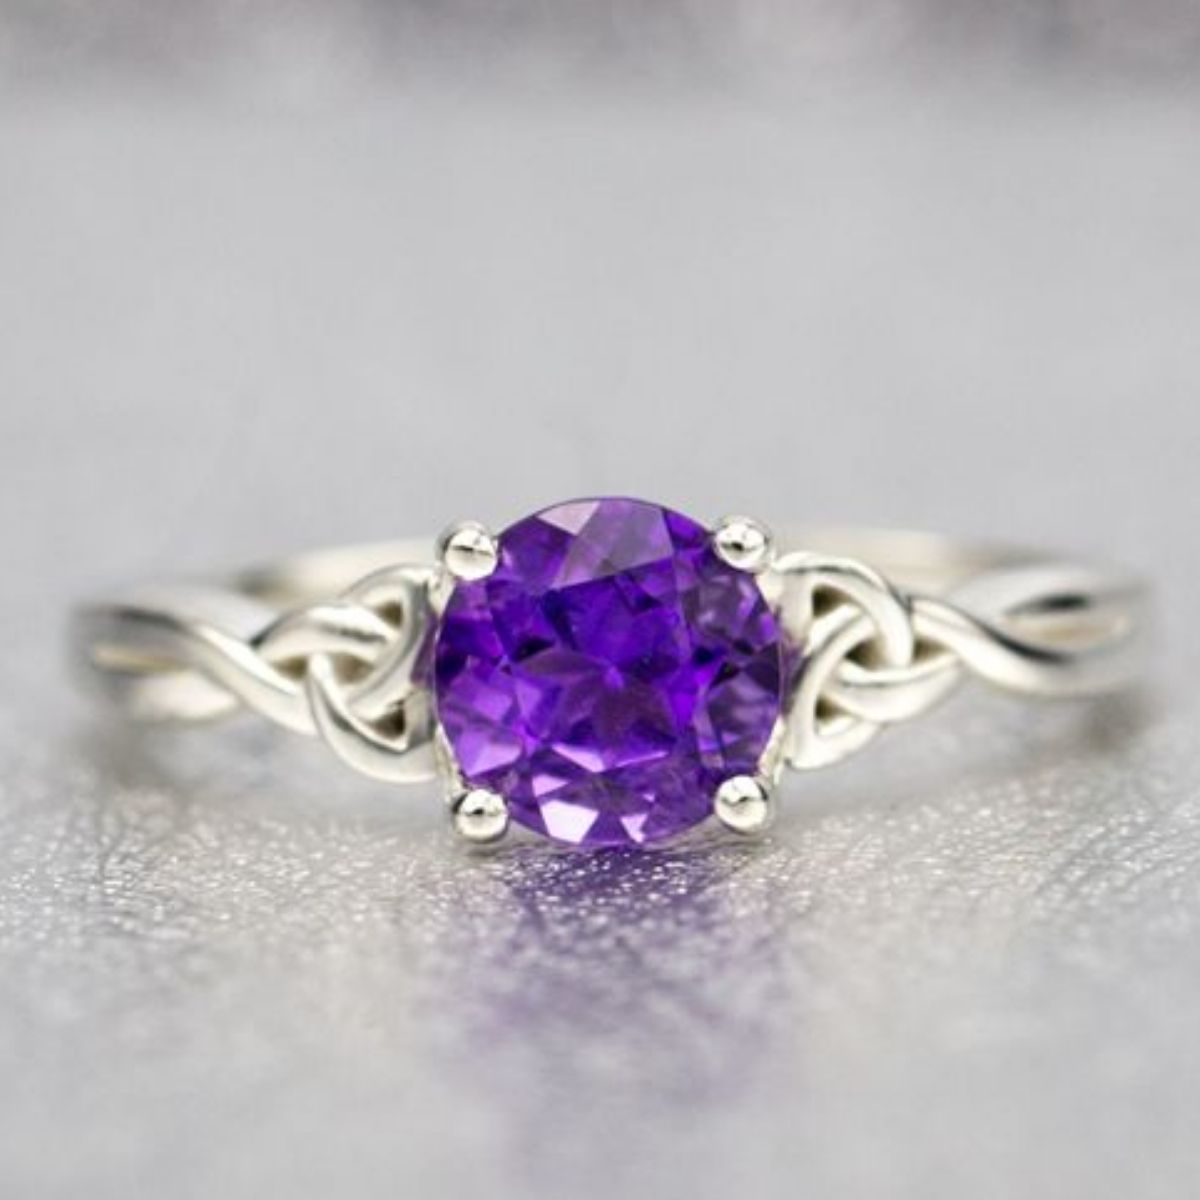 listing fullxfull s inlay rings crushed stone ring wedding il amethyst zoom men purple mens with oxjj titanium